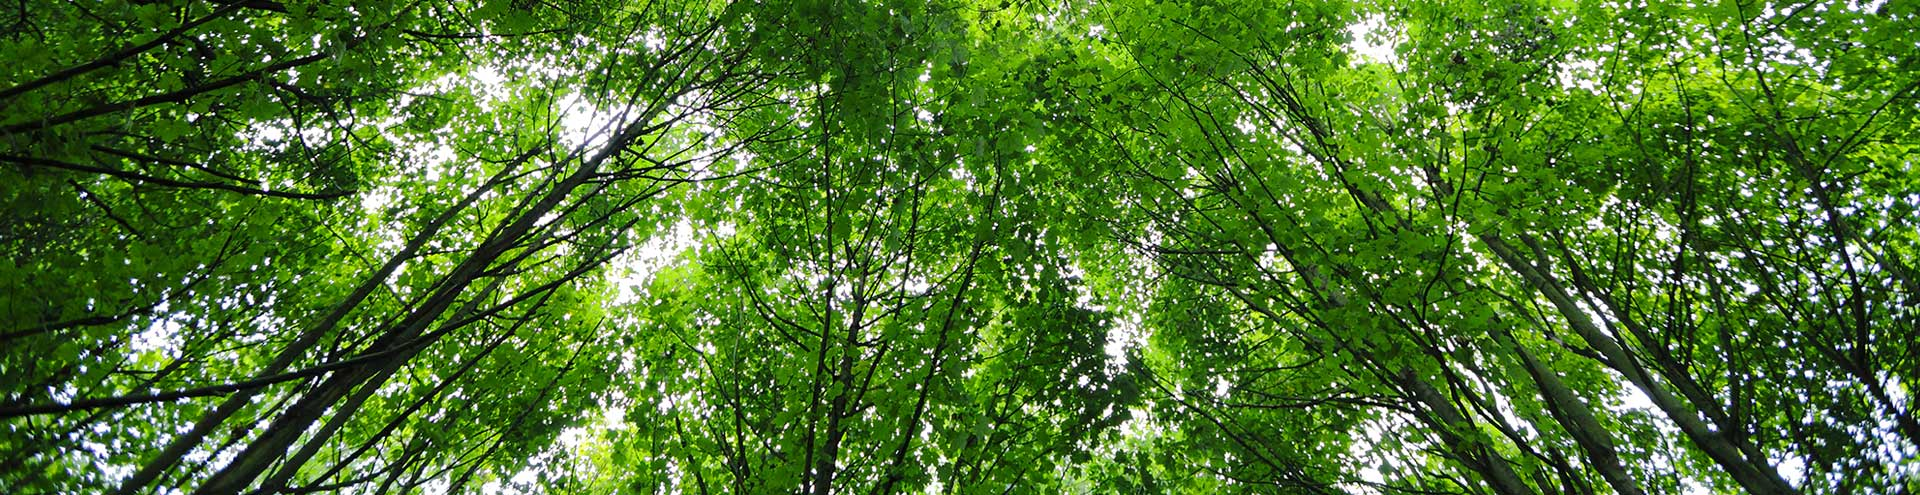 A canopy made from lush green trees in summer.